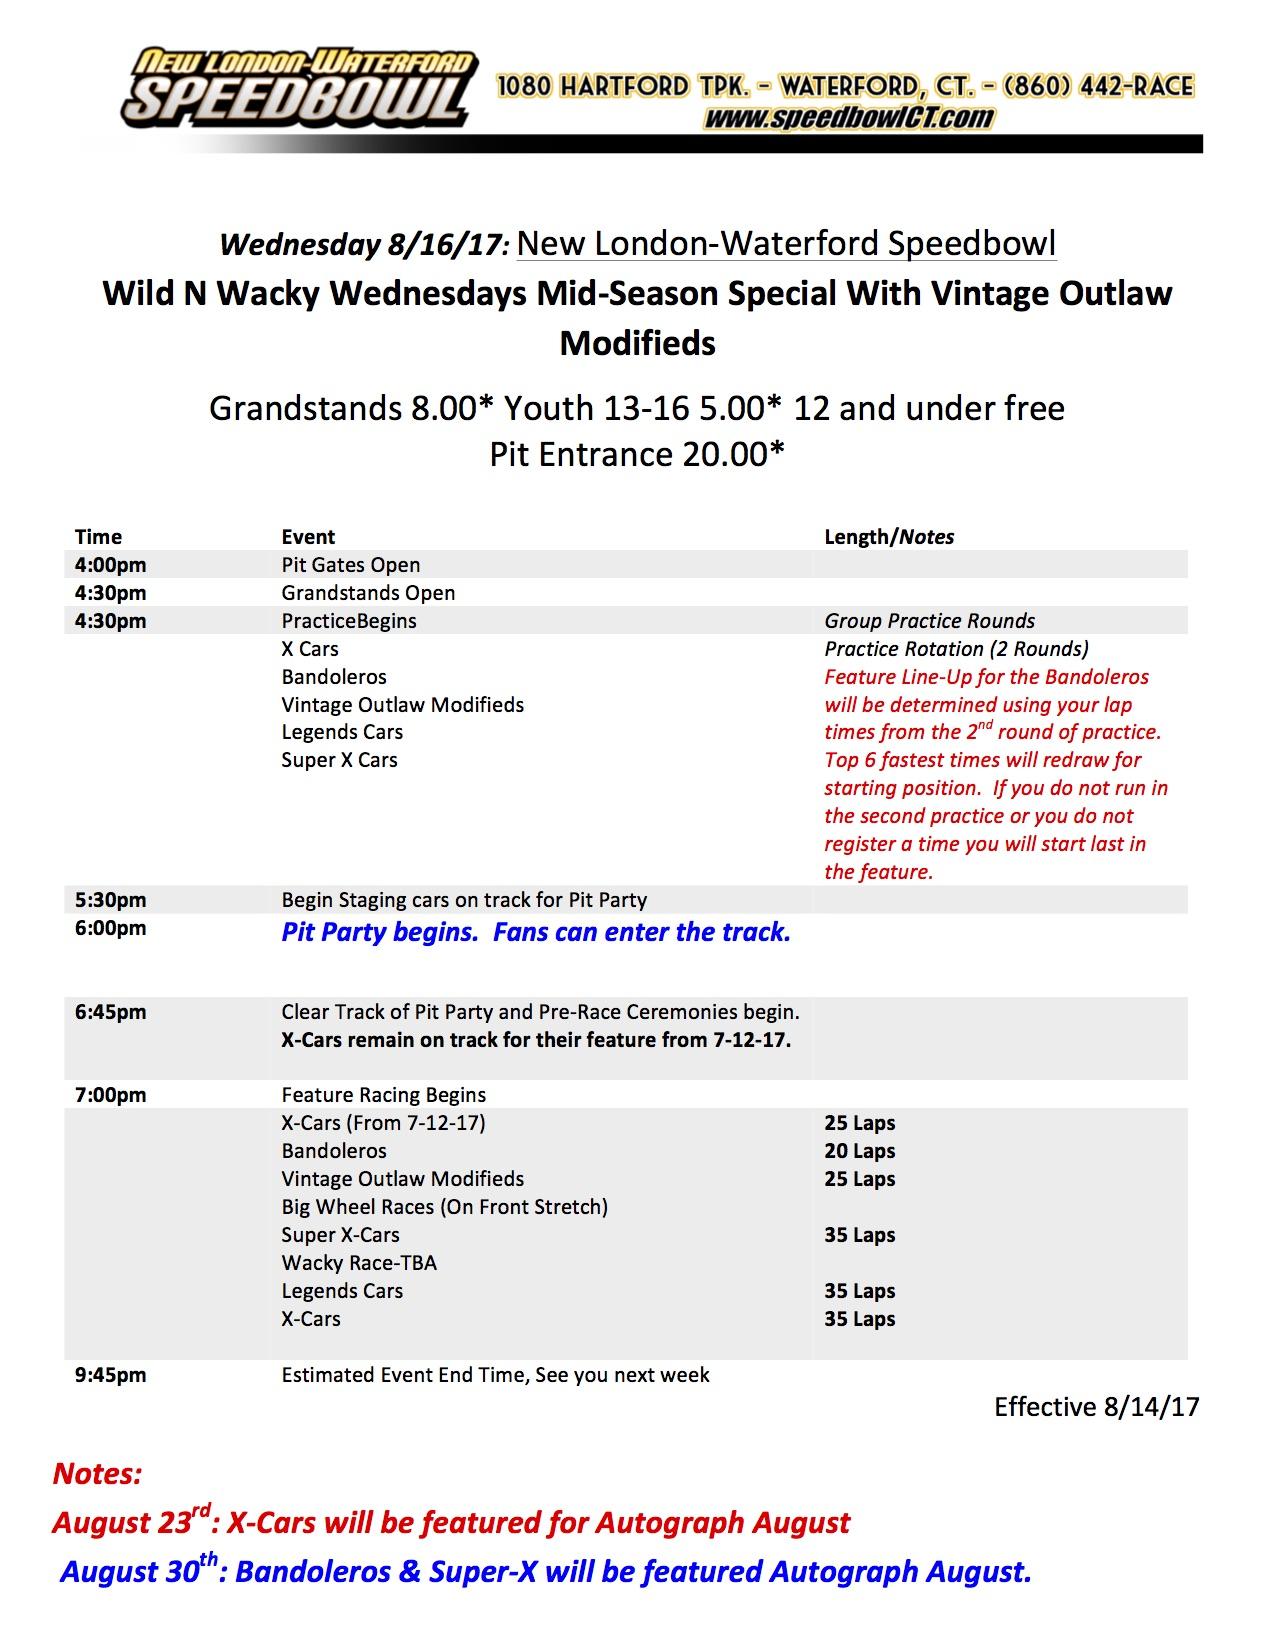 Wednesday Race Day Schedule